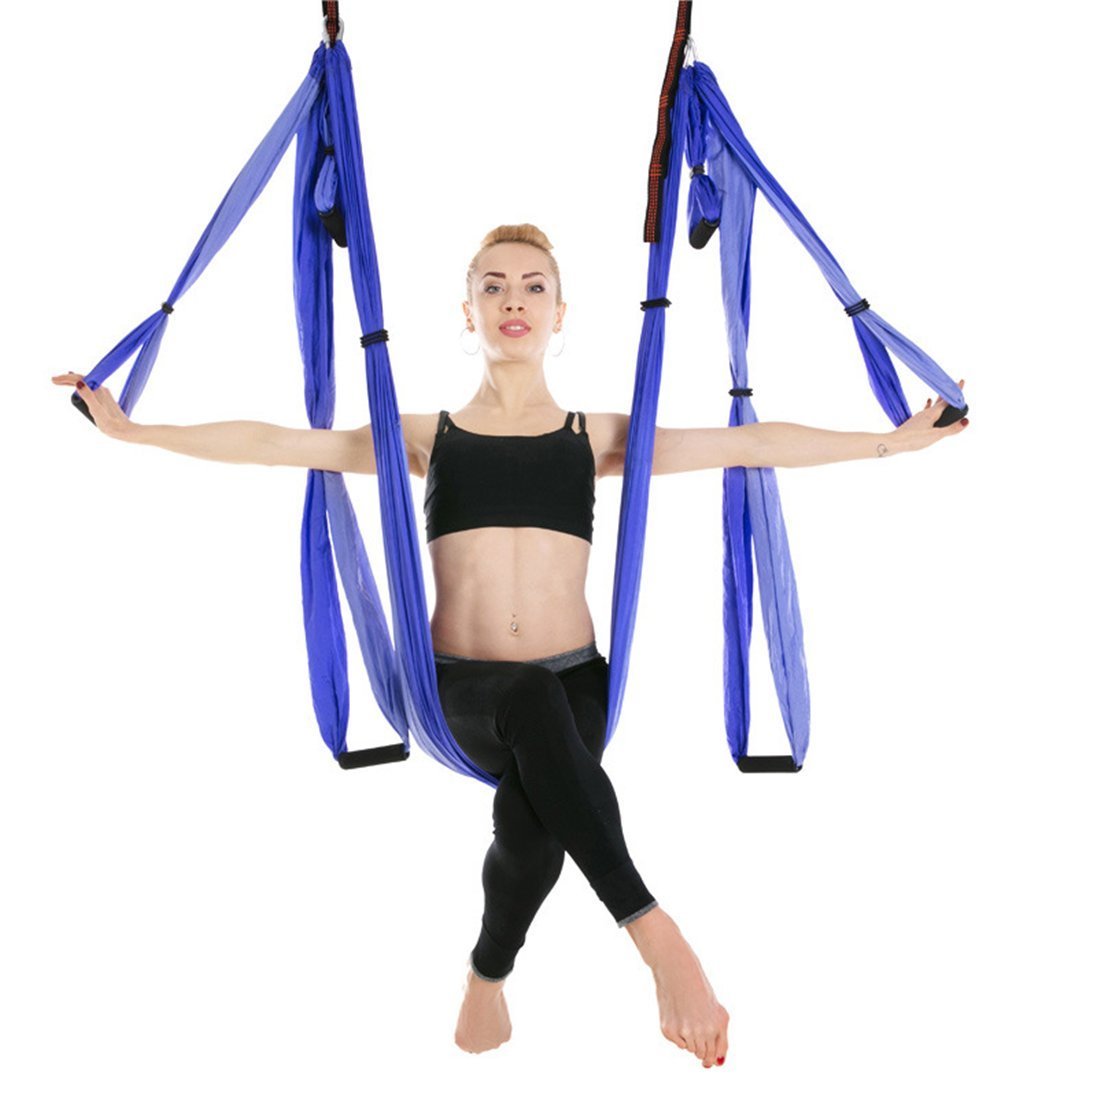 Ranbo aerial yoga trapeze set Ultra Strong Antigravity Yoga Swing / Hammock Holds Up to 400 Pounds for Inversion Exercises Pilate Fitness Flexibility Core Strength Weight Loss